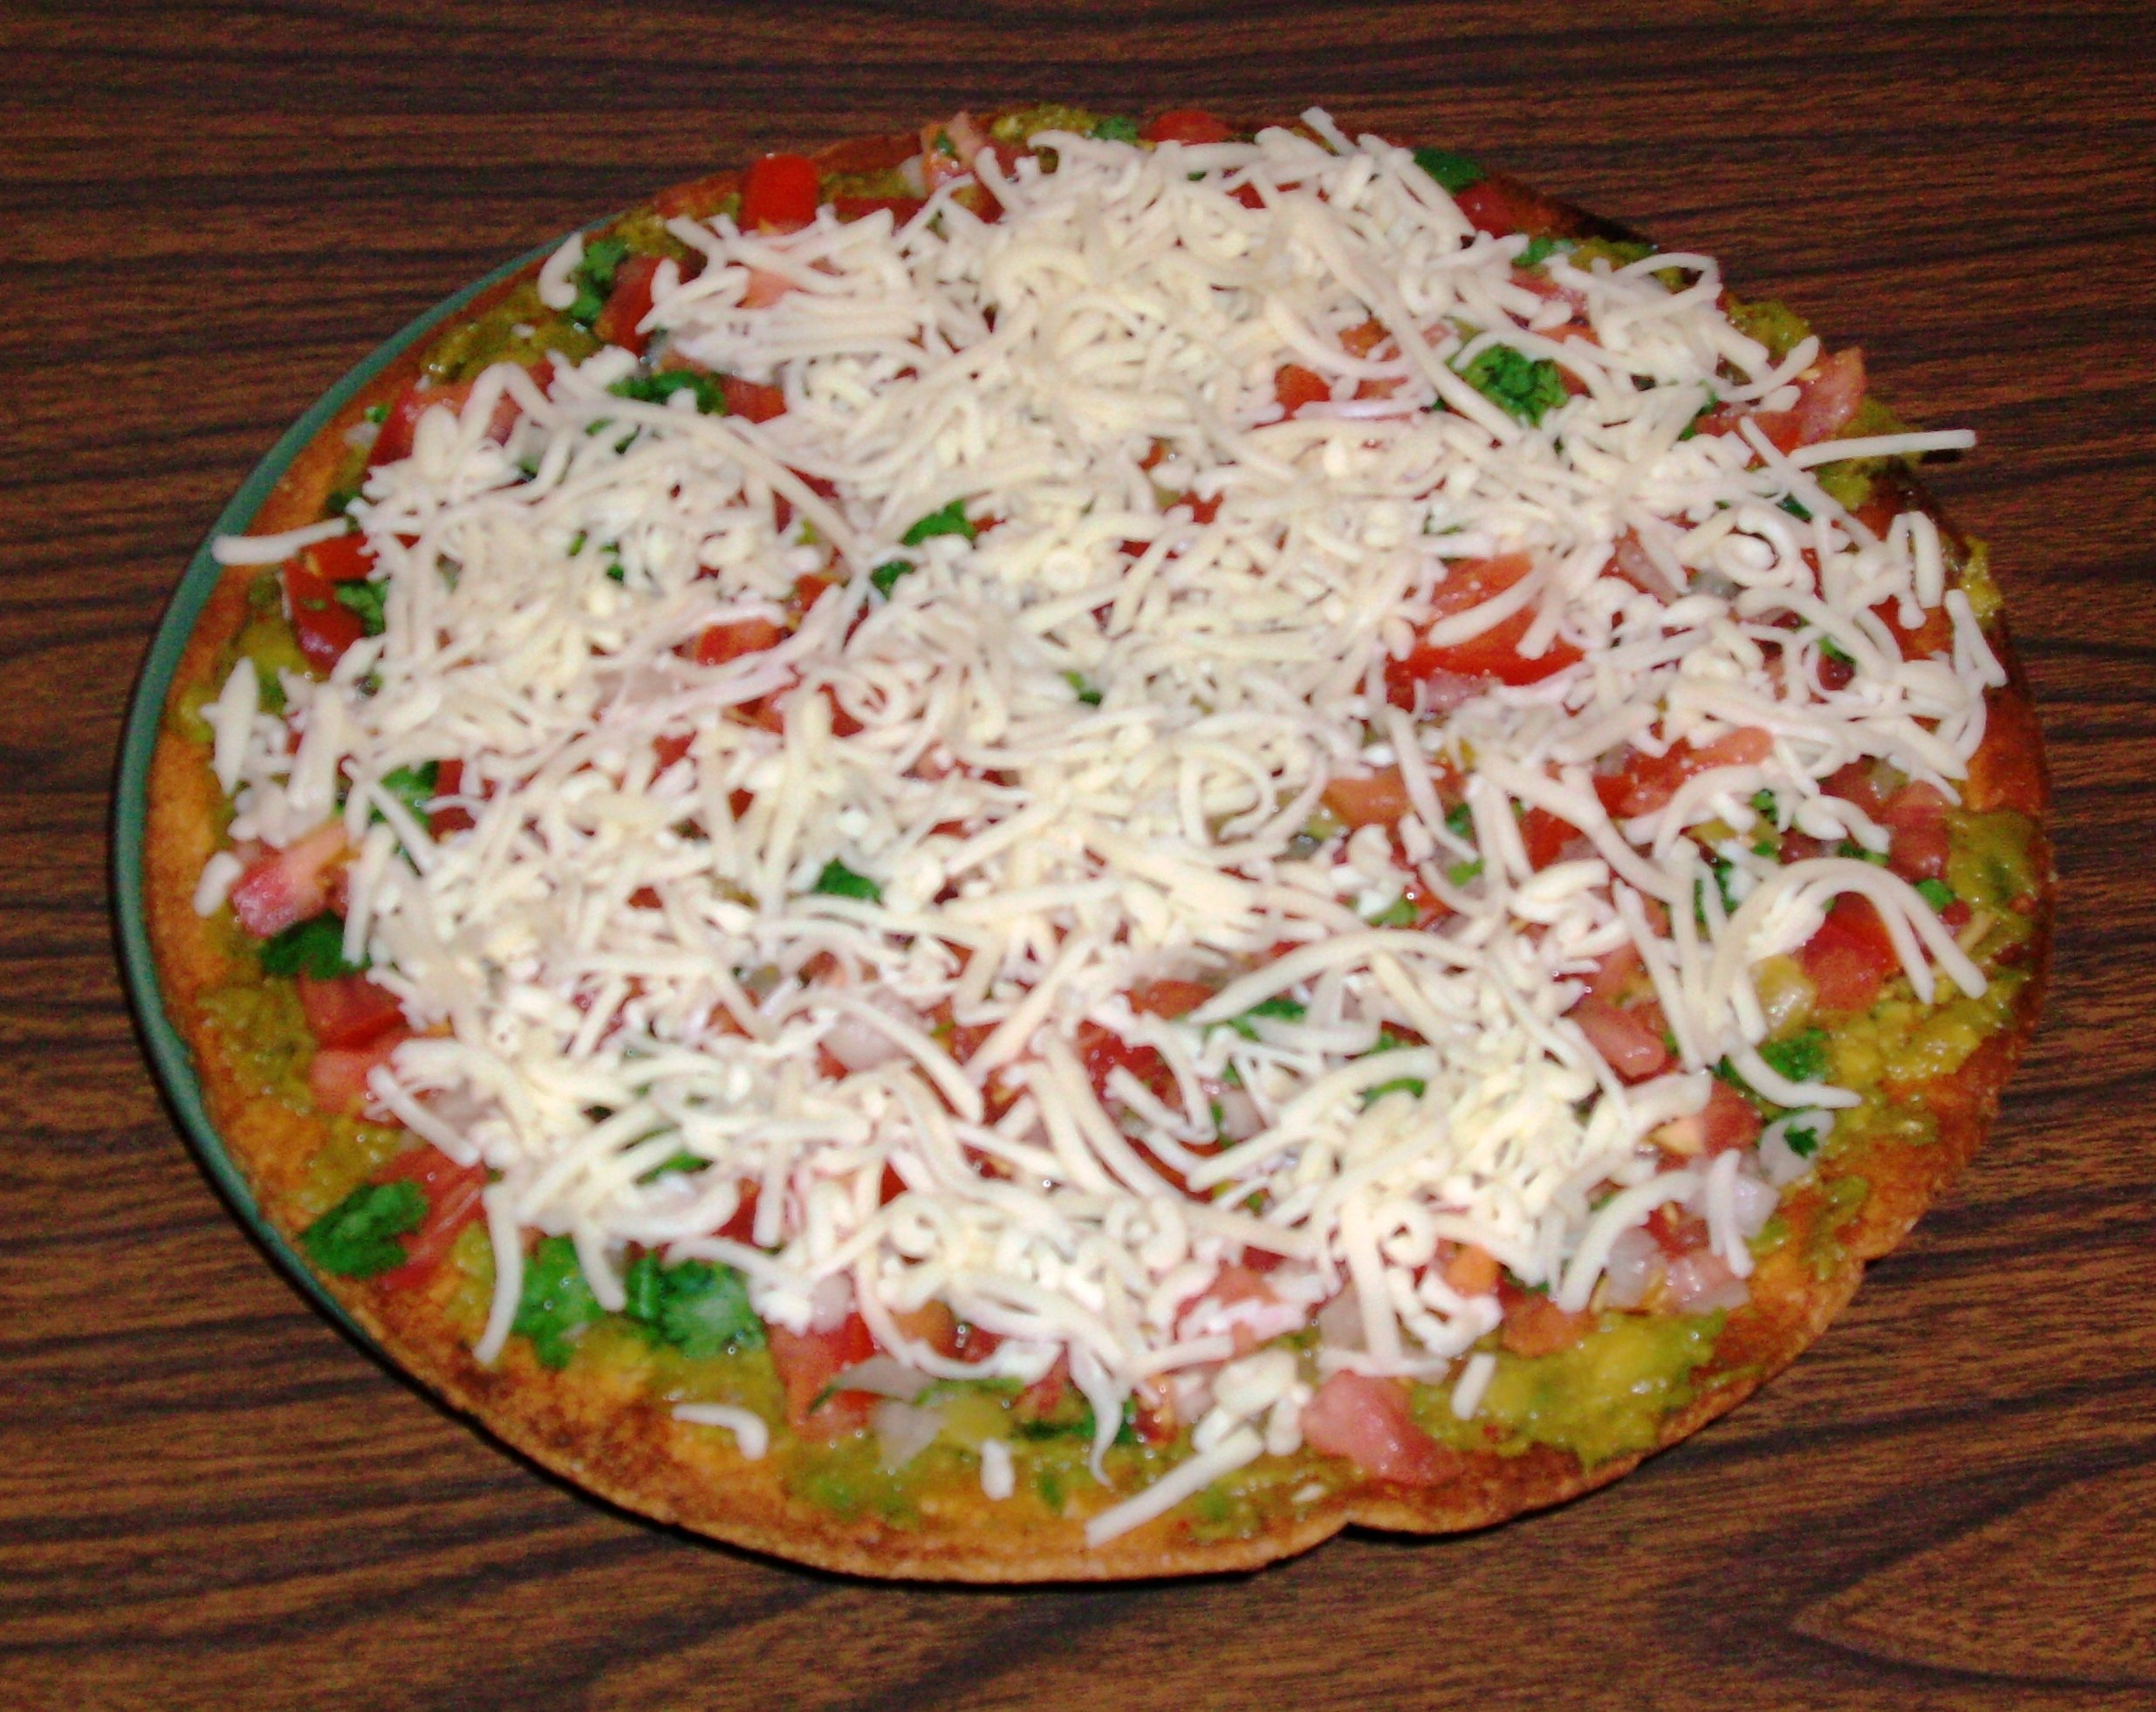 Cool Summer Pizza - Honorable mention. Courtesy of Mary Leverette, South Carolina